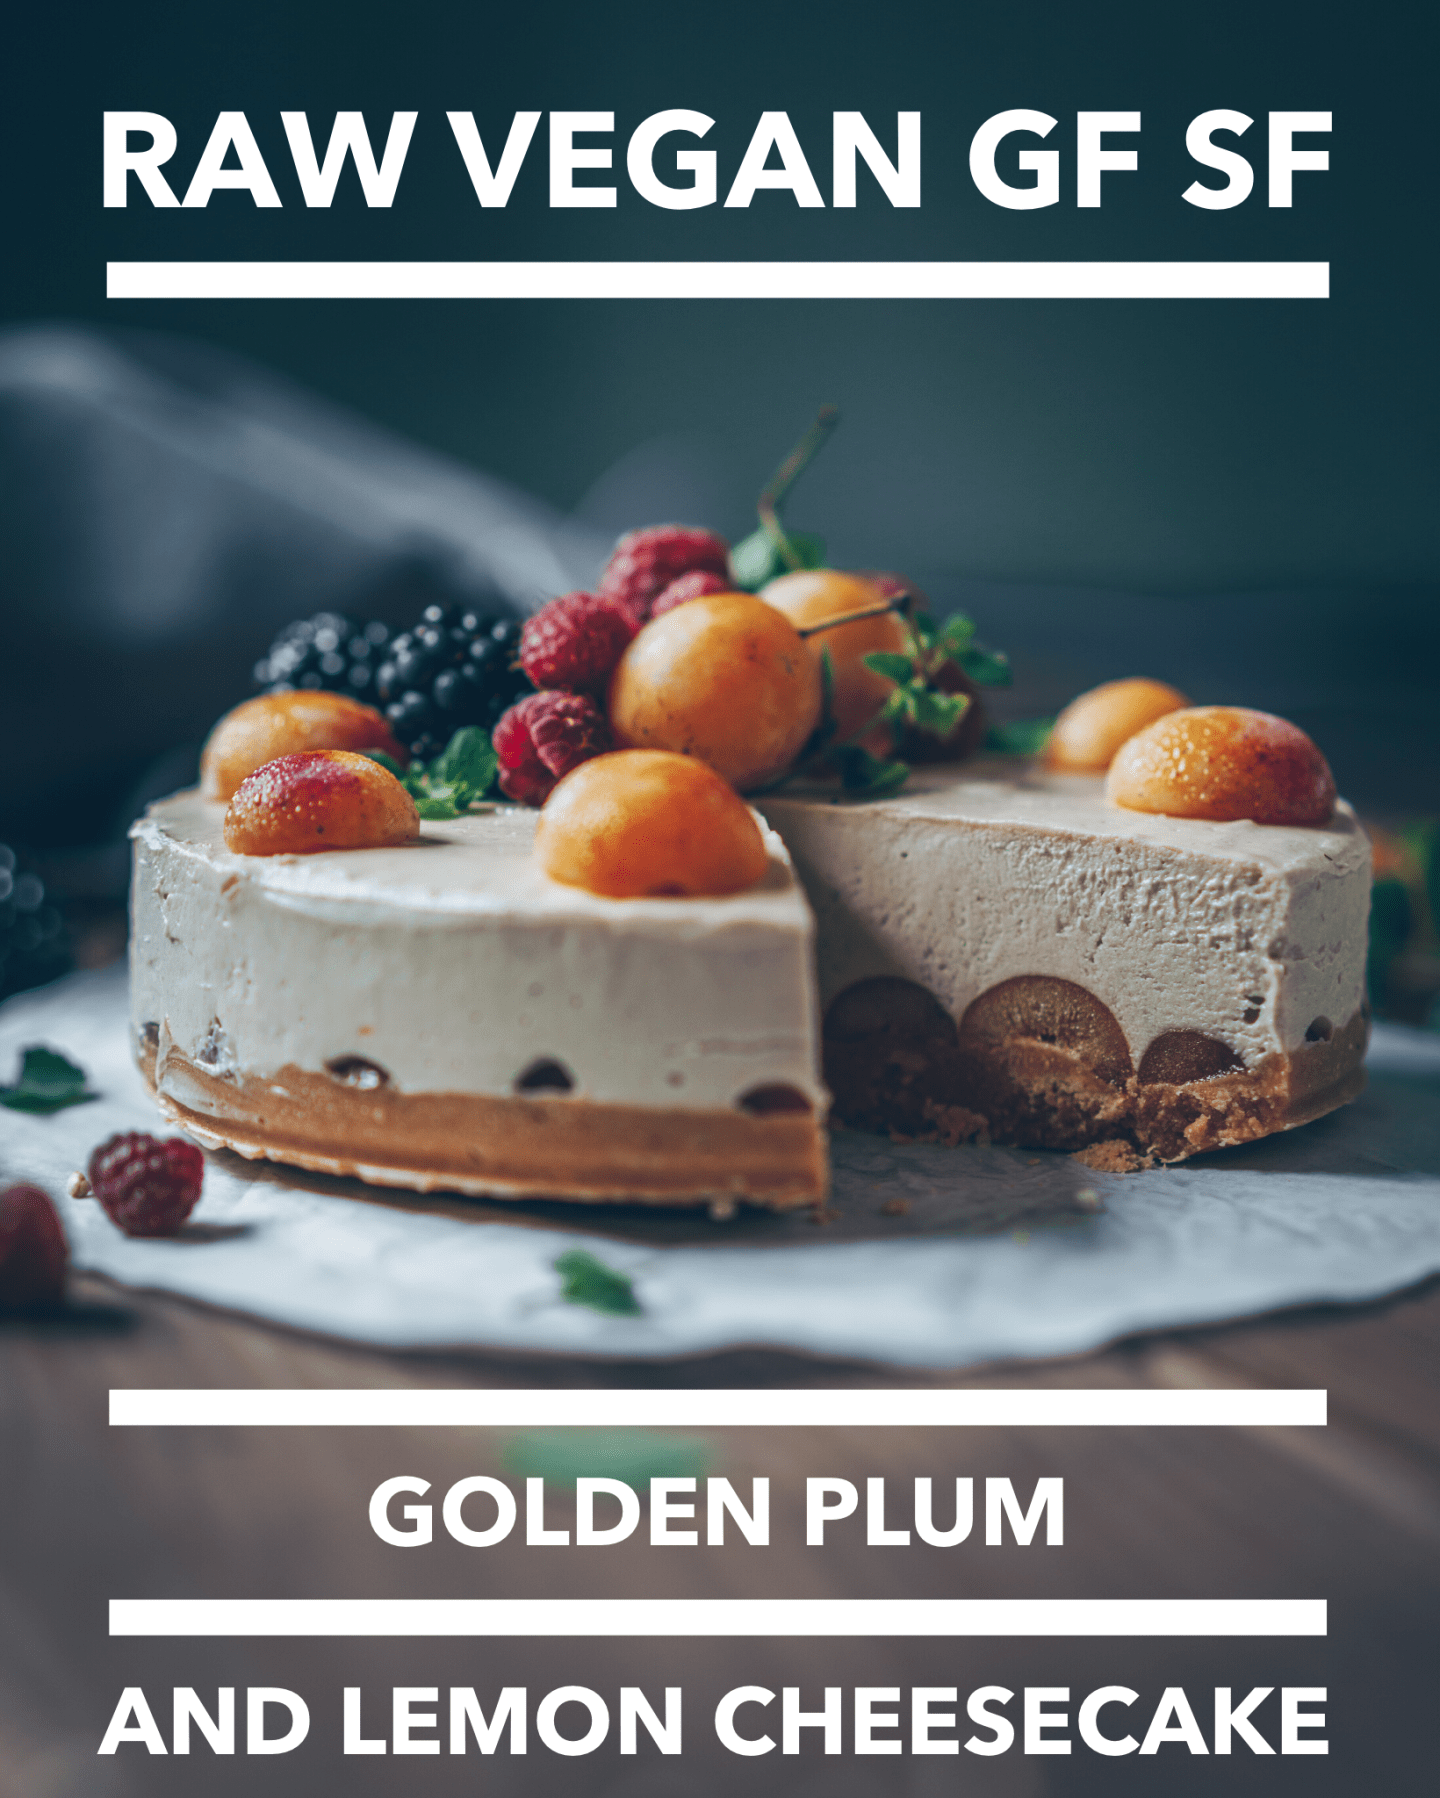 cake, raw, vegan, cheesecake, lemon, fall, autumn, delicious, clean eating, sugar free, no sugar, gluten-free, healthy, easy, raw cake, treat, dessert, food, recipe, dairy free, sugar free, orange, fruit, health, food, photographer, food styling, food stylist